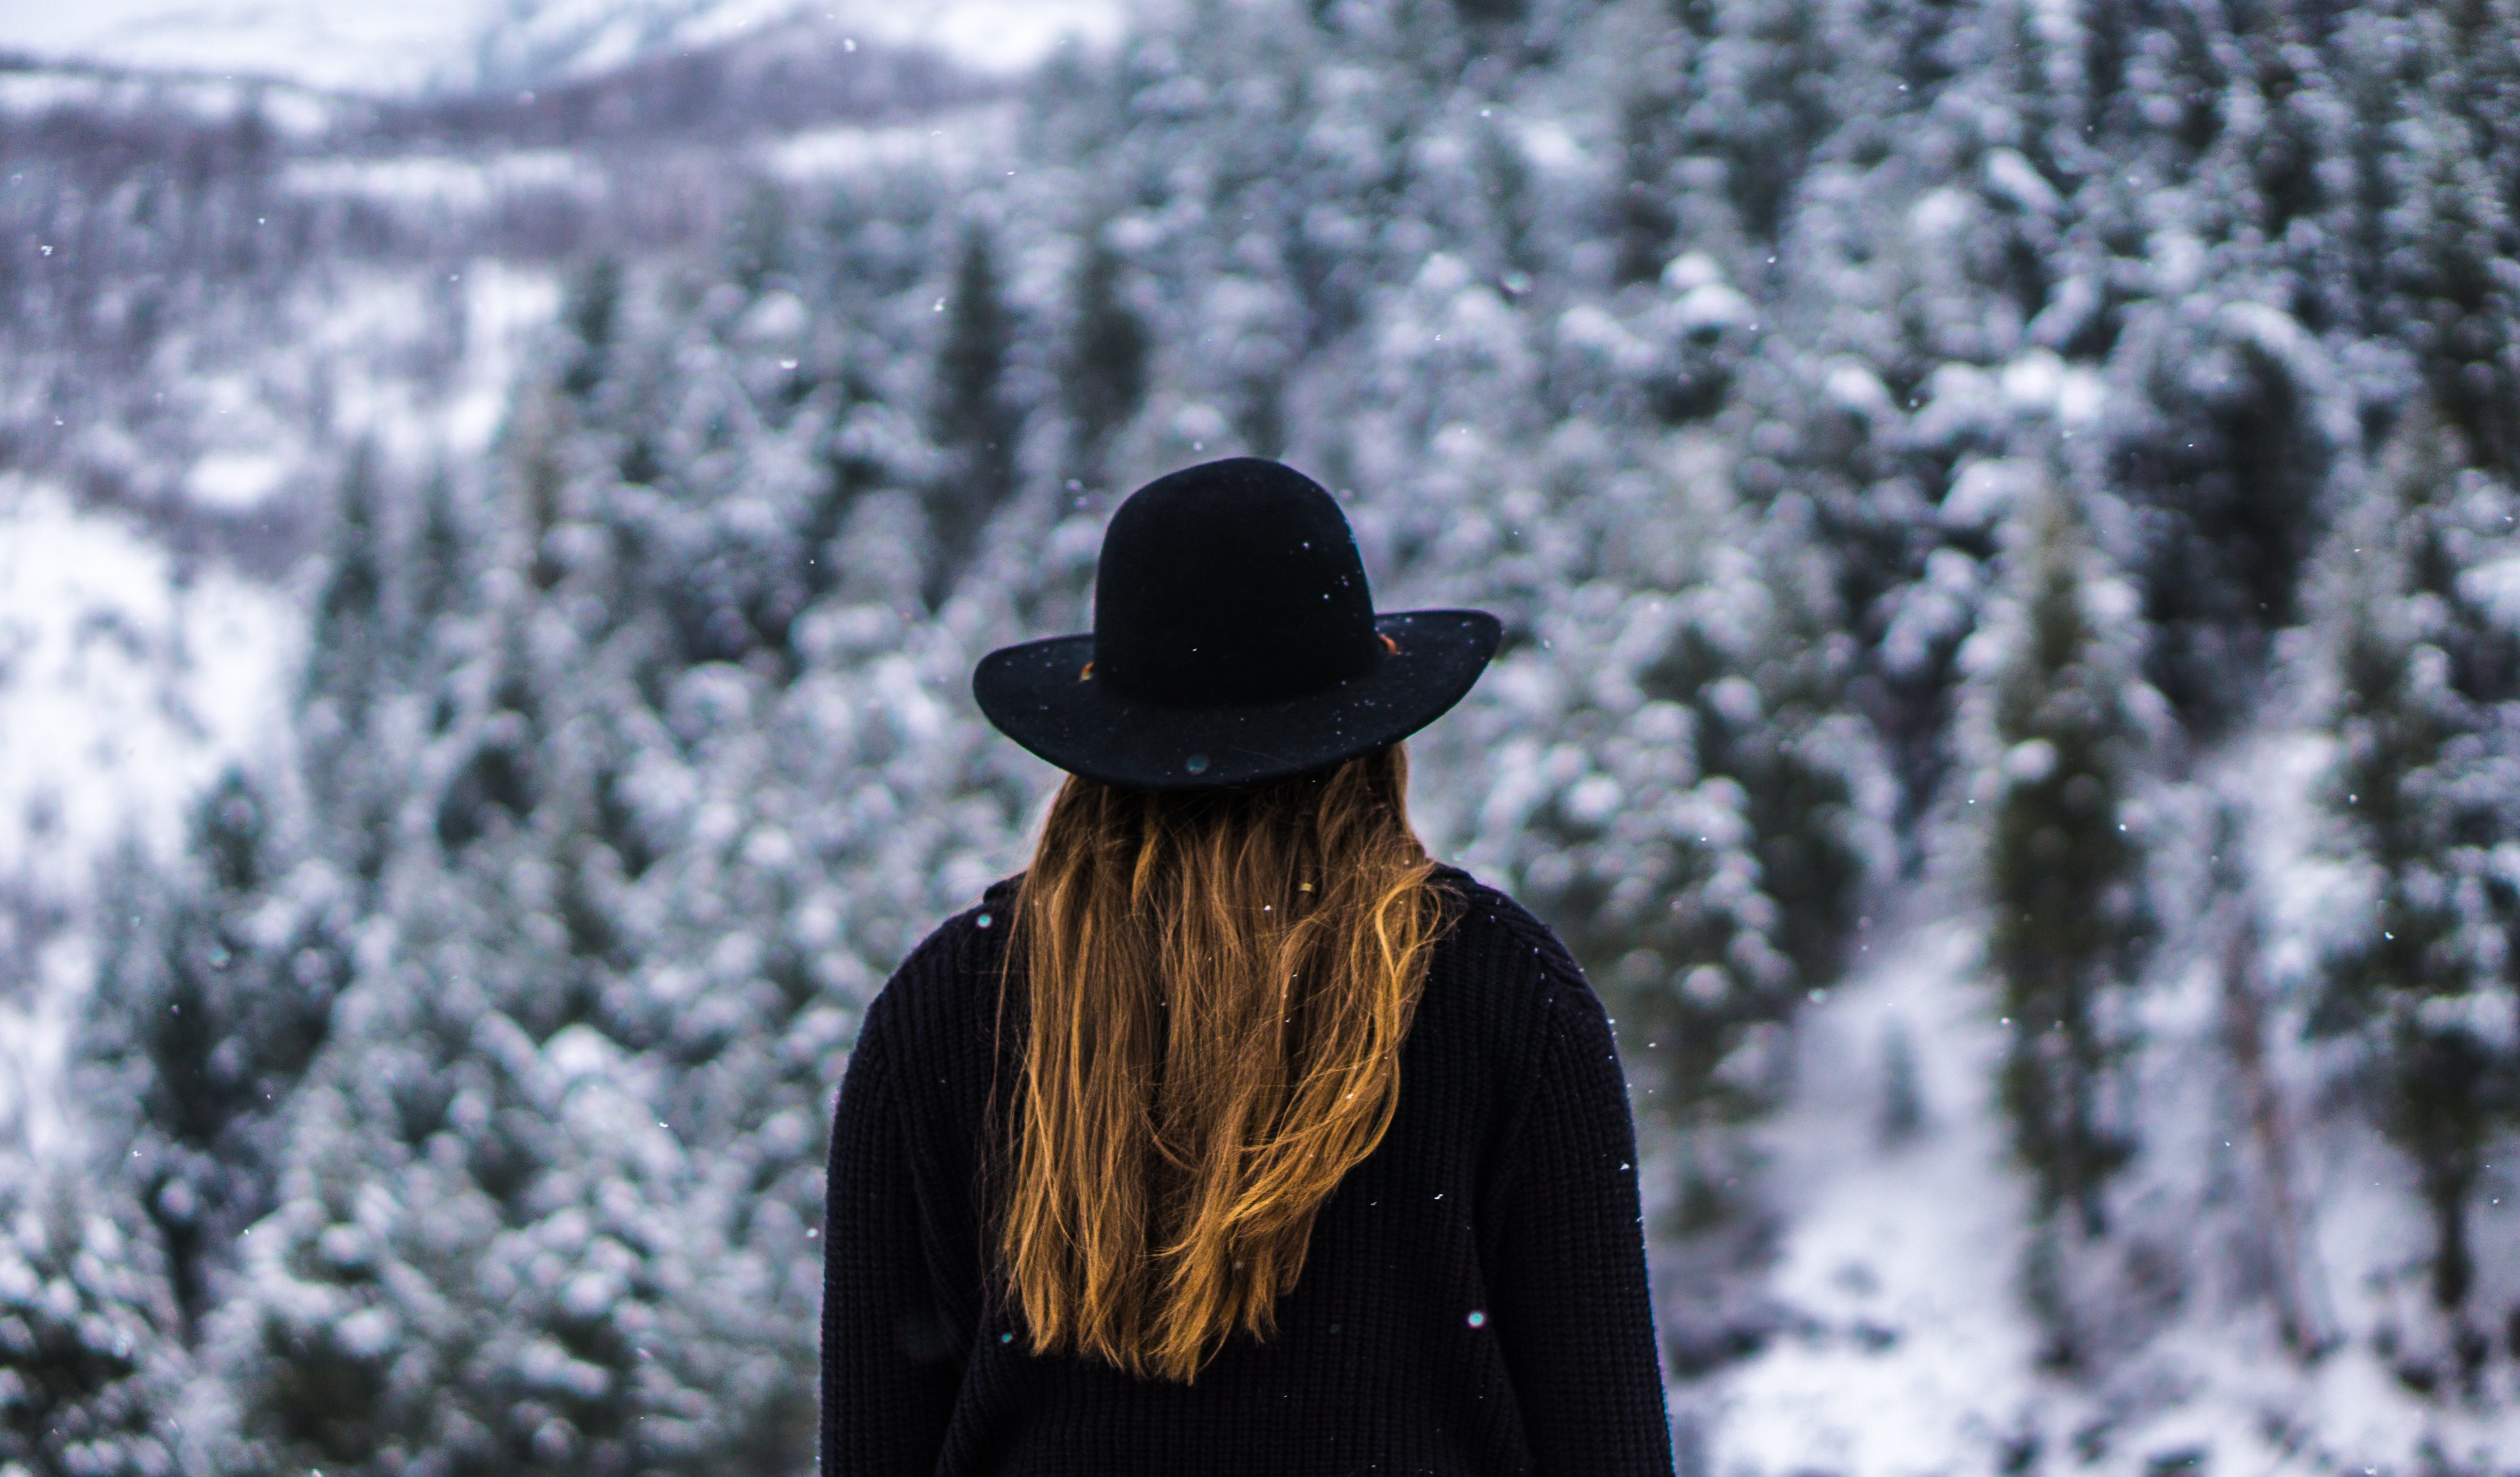 A person with long, red hair and a black coat and hat takes in the view of snow covered trees as snow falls